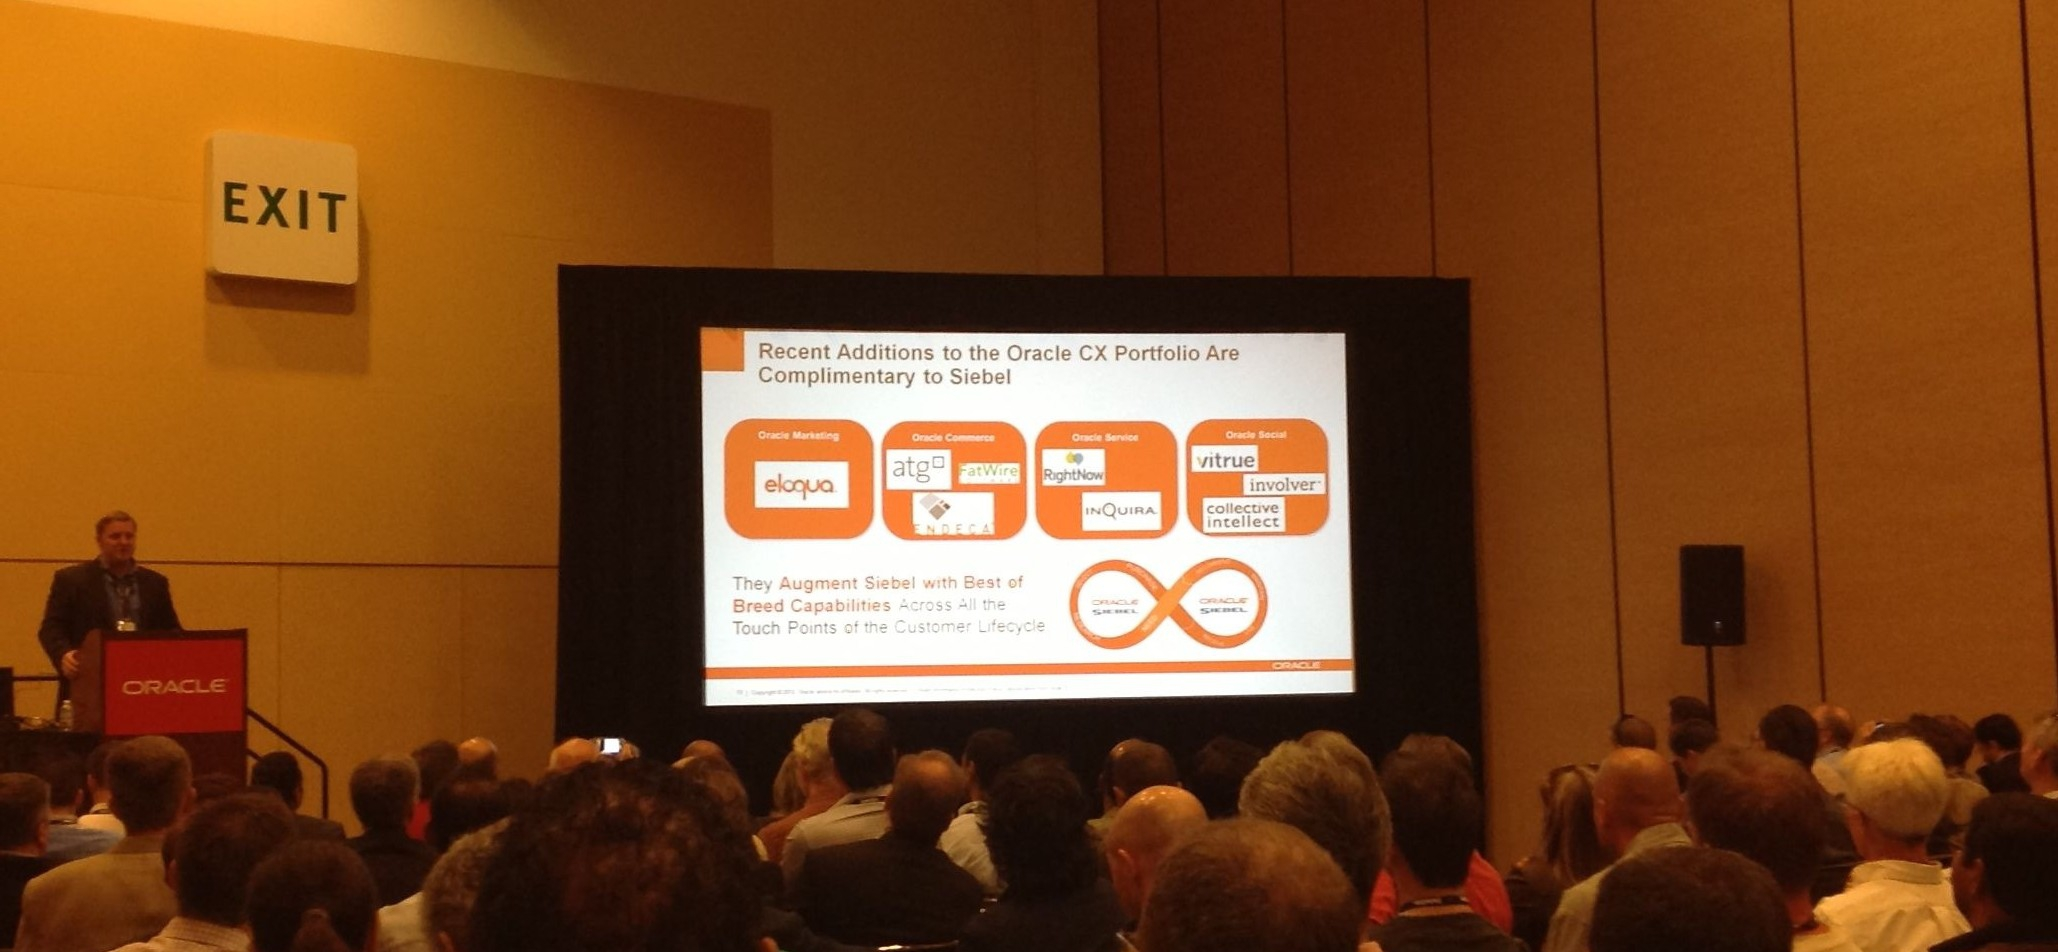 Siebel at the heart of Oracle's CX offering